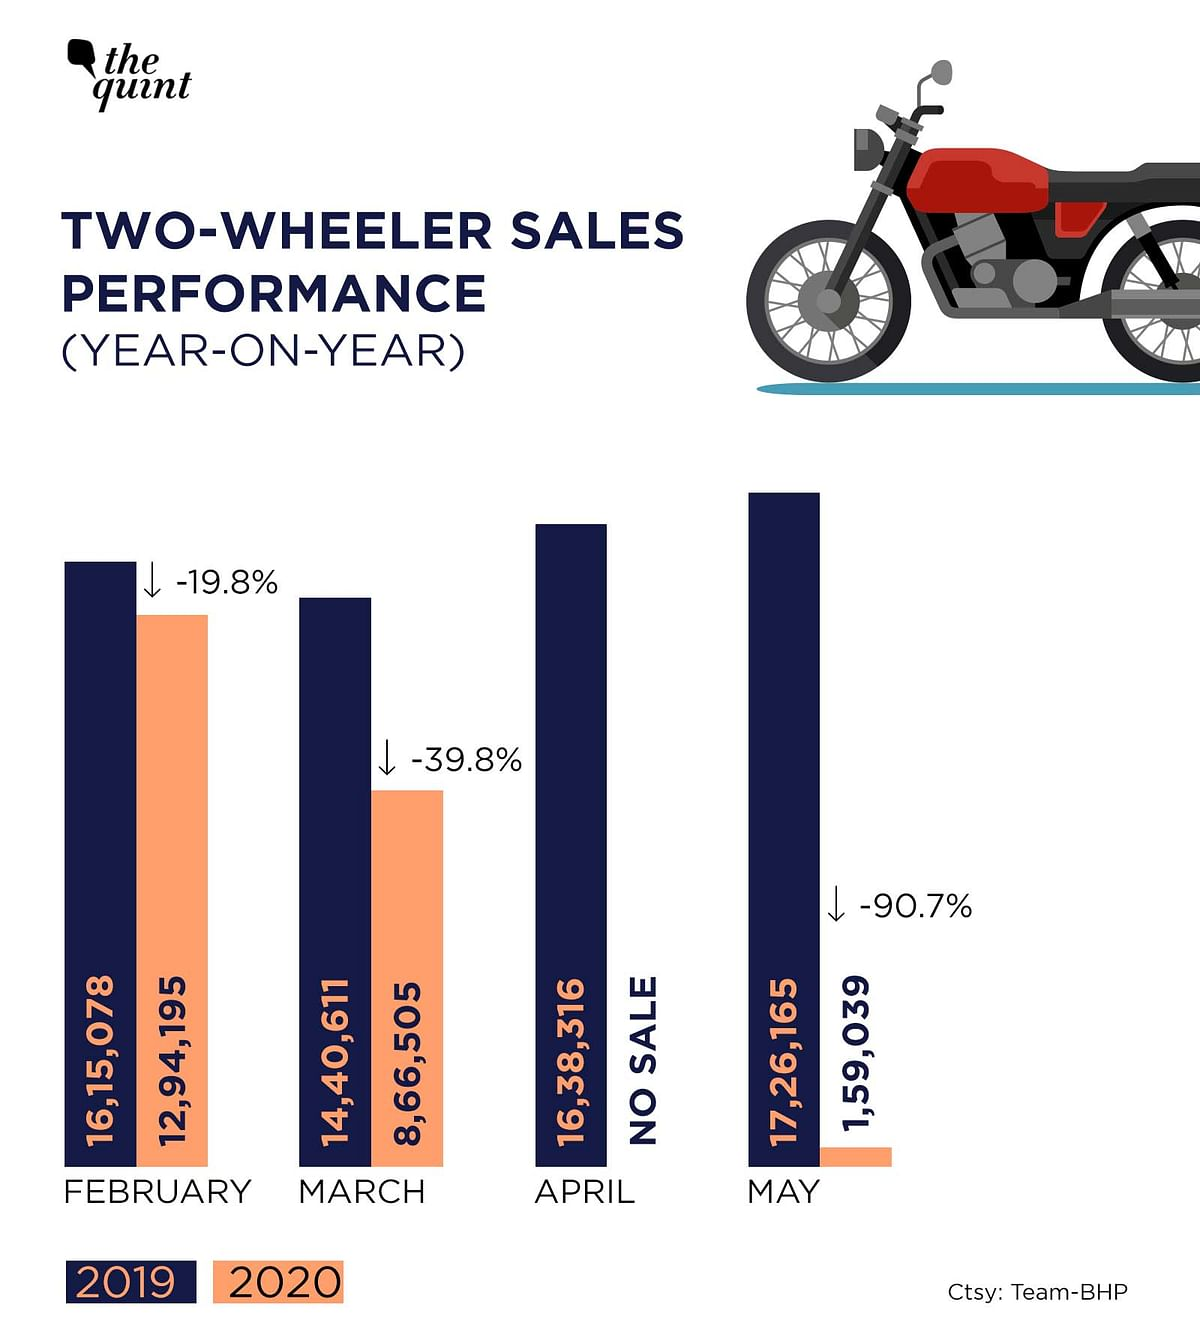 Monthly year-on-year sales performance of two-wheelers in India.